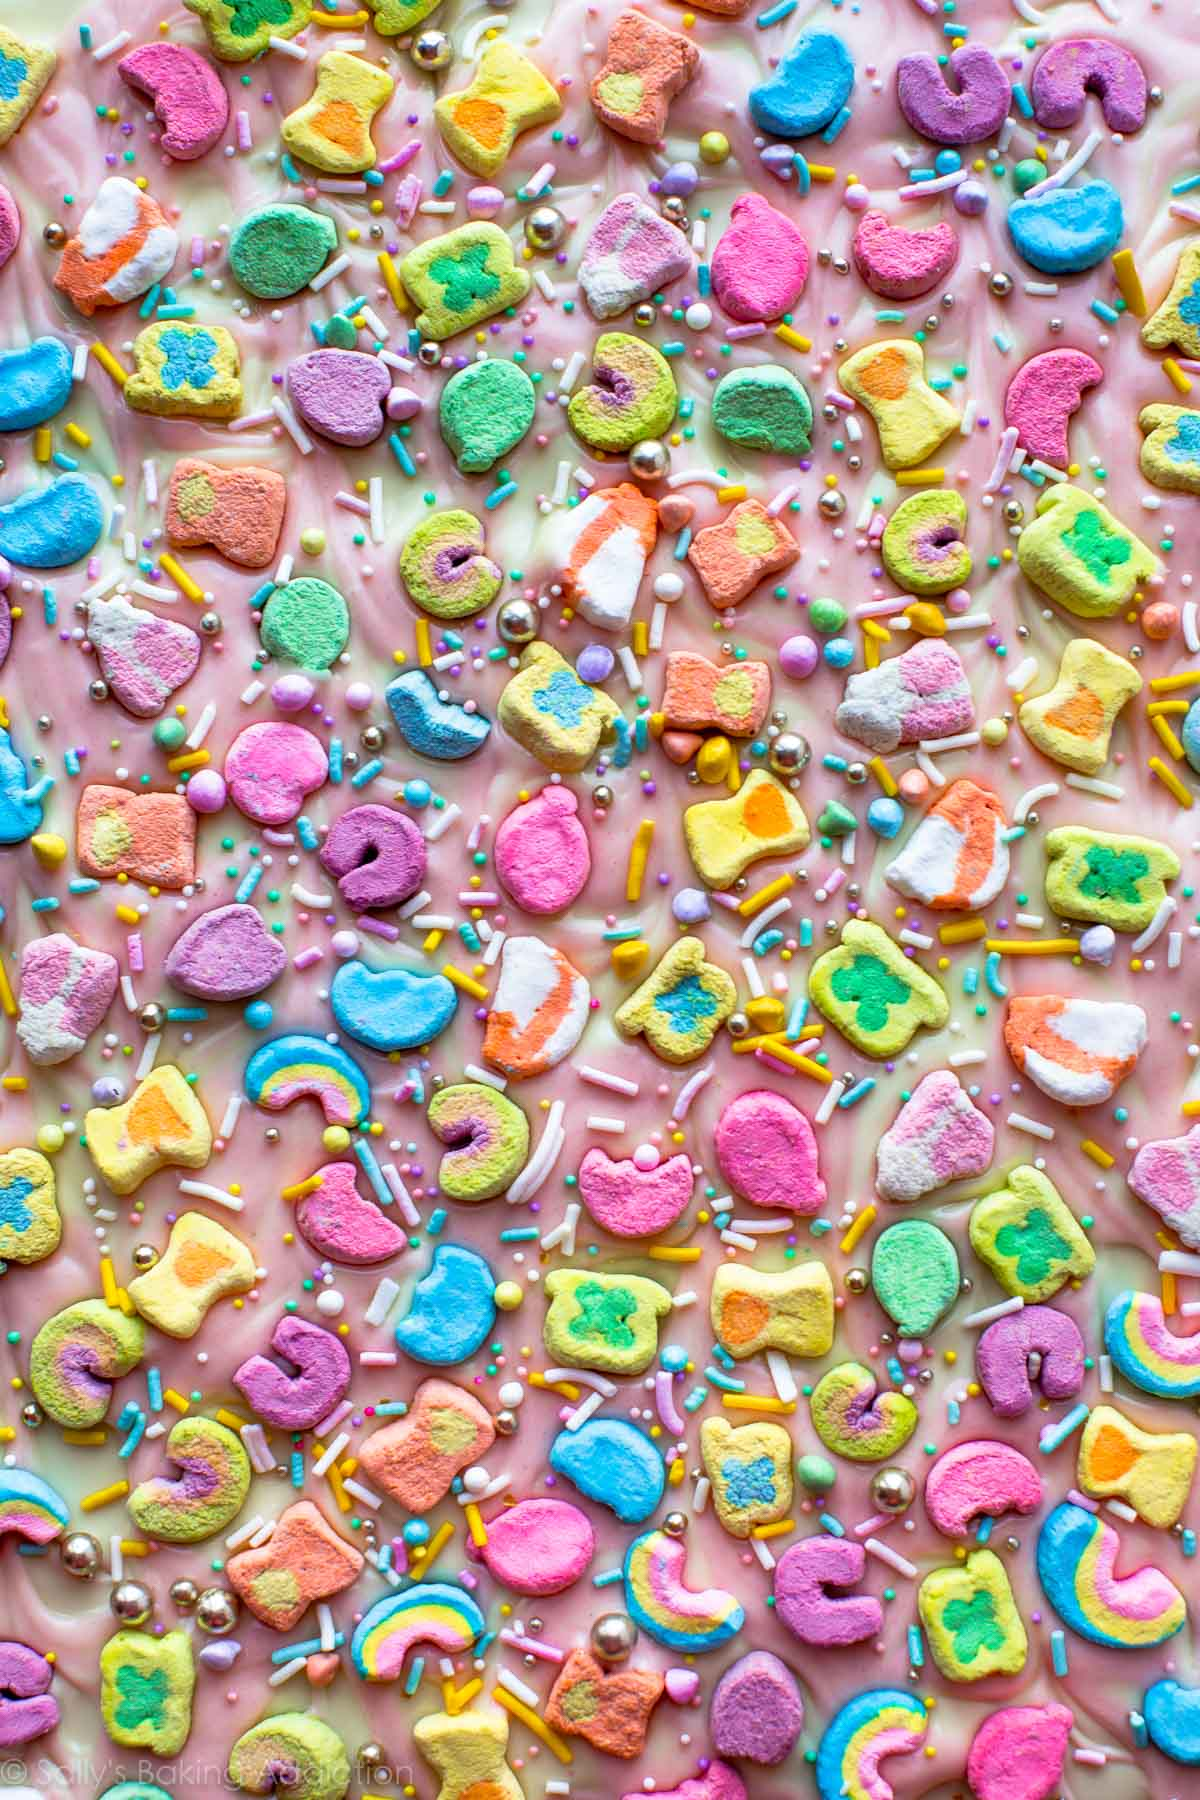 Original Lucky Charms™ All the magically delicious lucky stuff: hearts, stars, horseshoes, rainbows, blue moons, clovers, UNICORNS, and tasty red balloons!